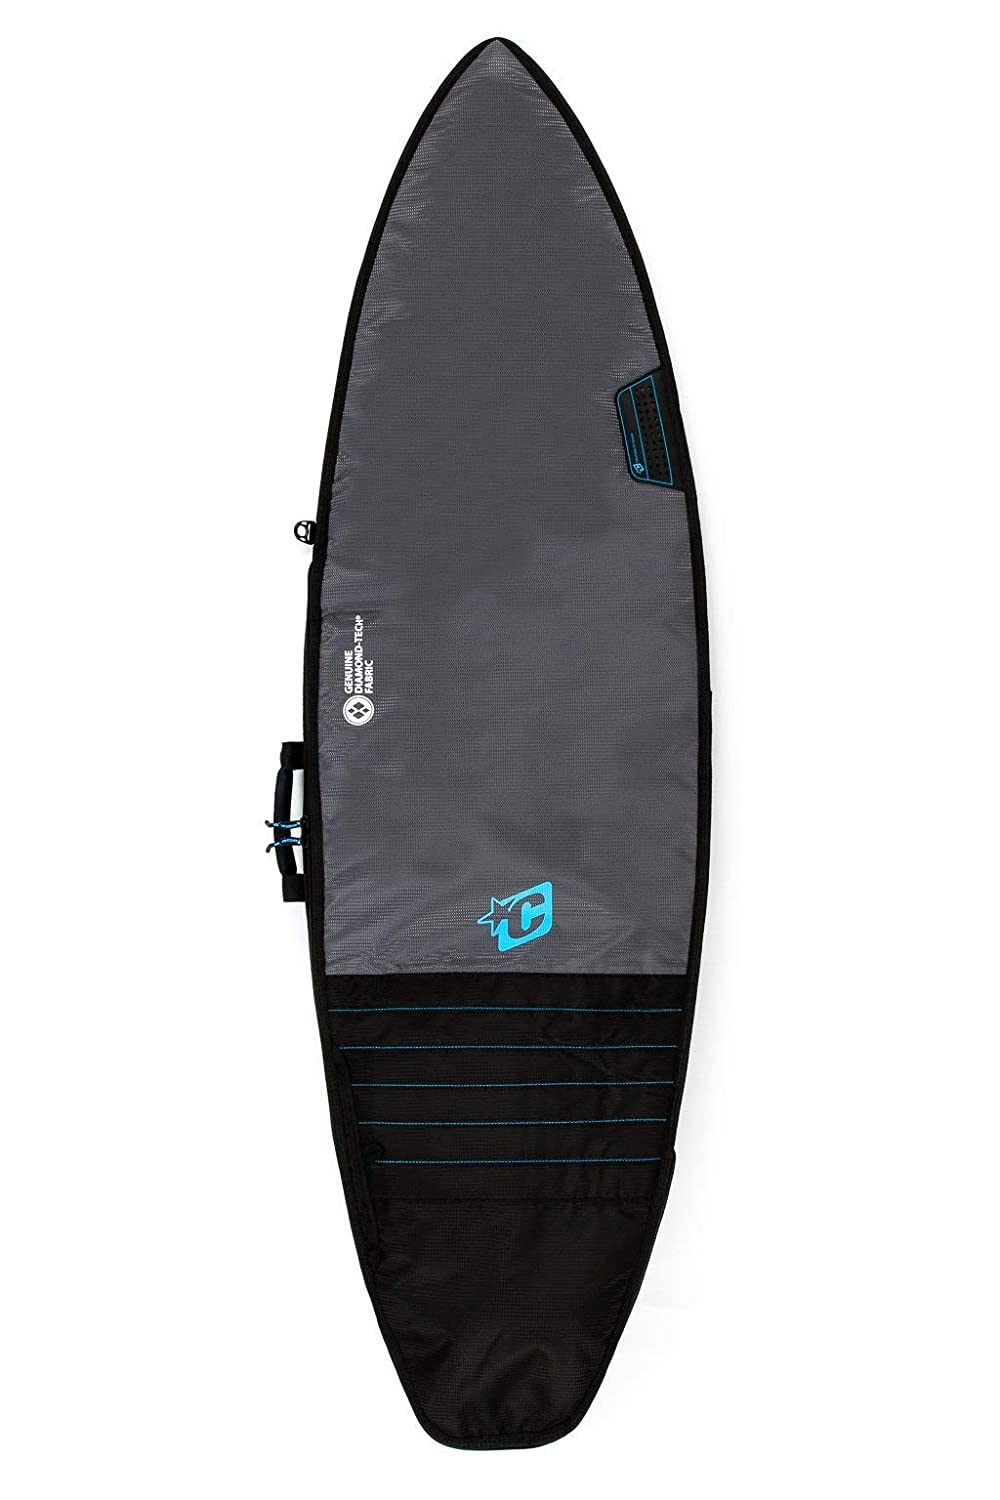 Creatures of Leisure Shortboard Day Use Board Cover CSD058CHBK